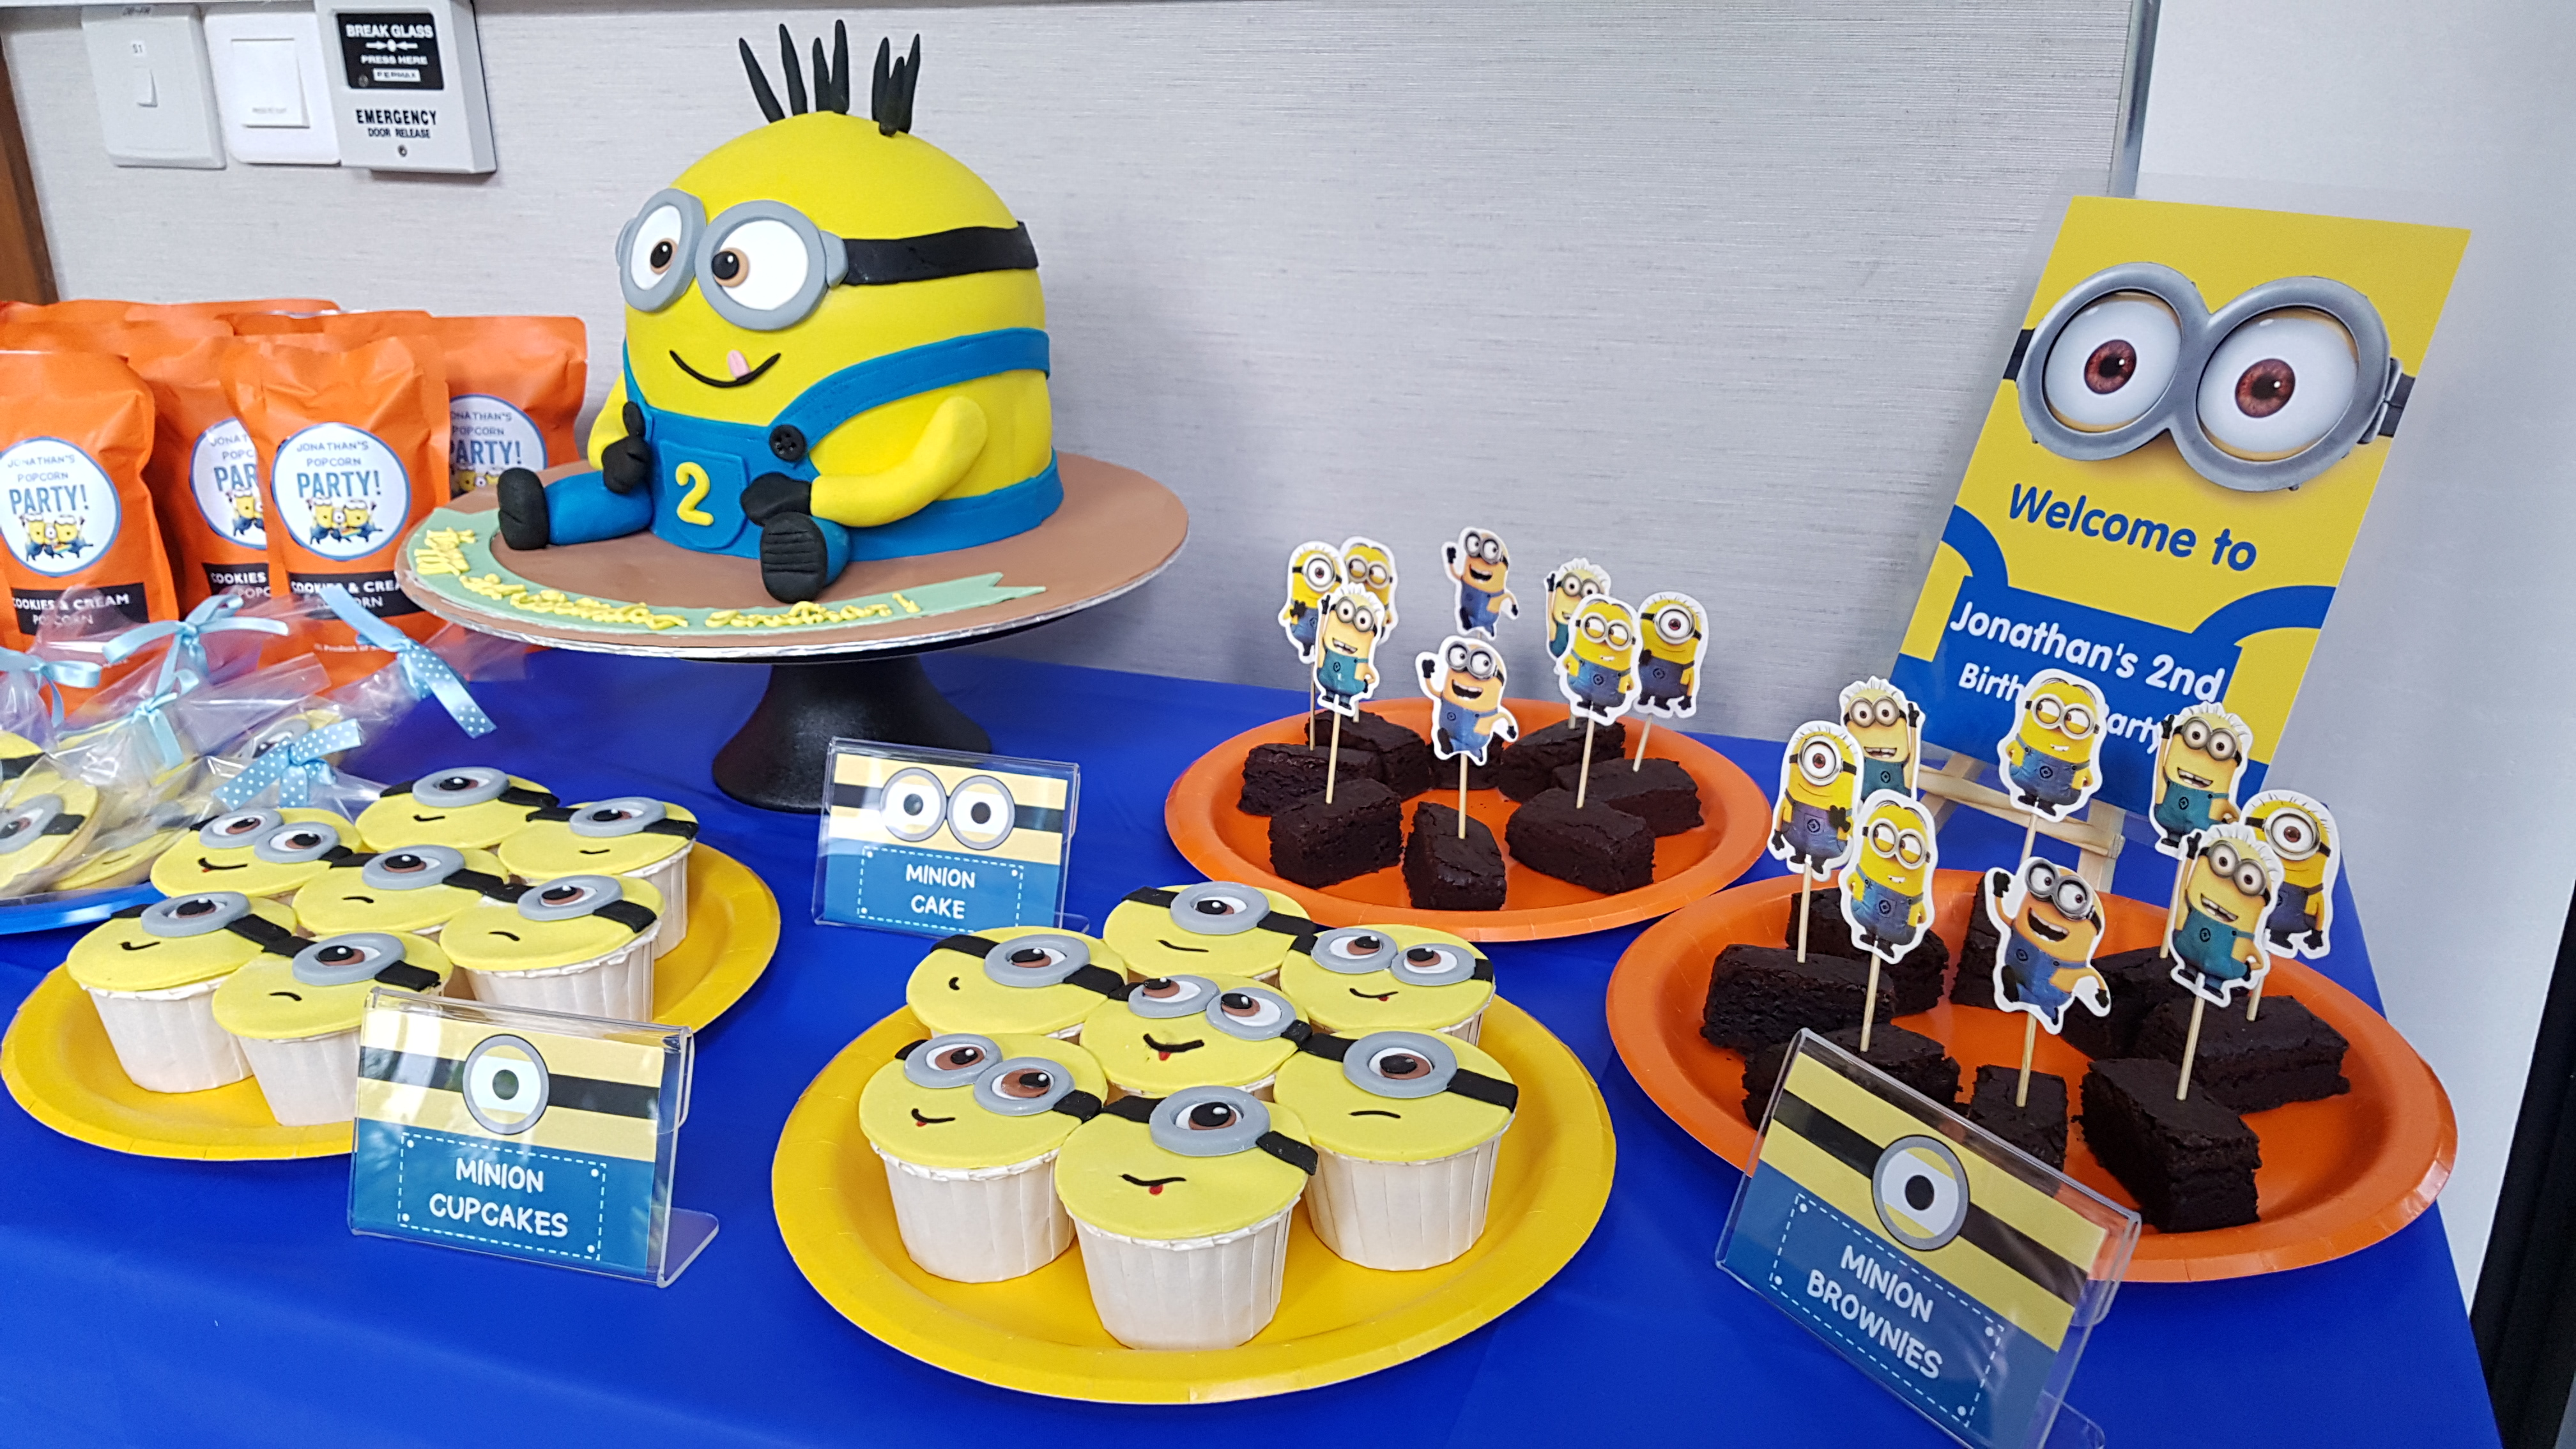 Jonathan's Minion Party6